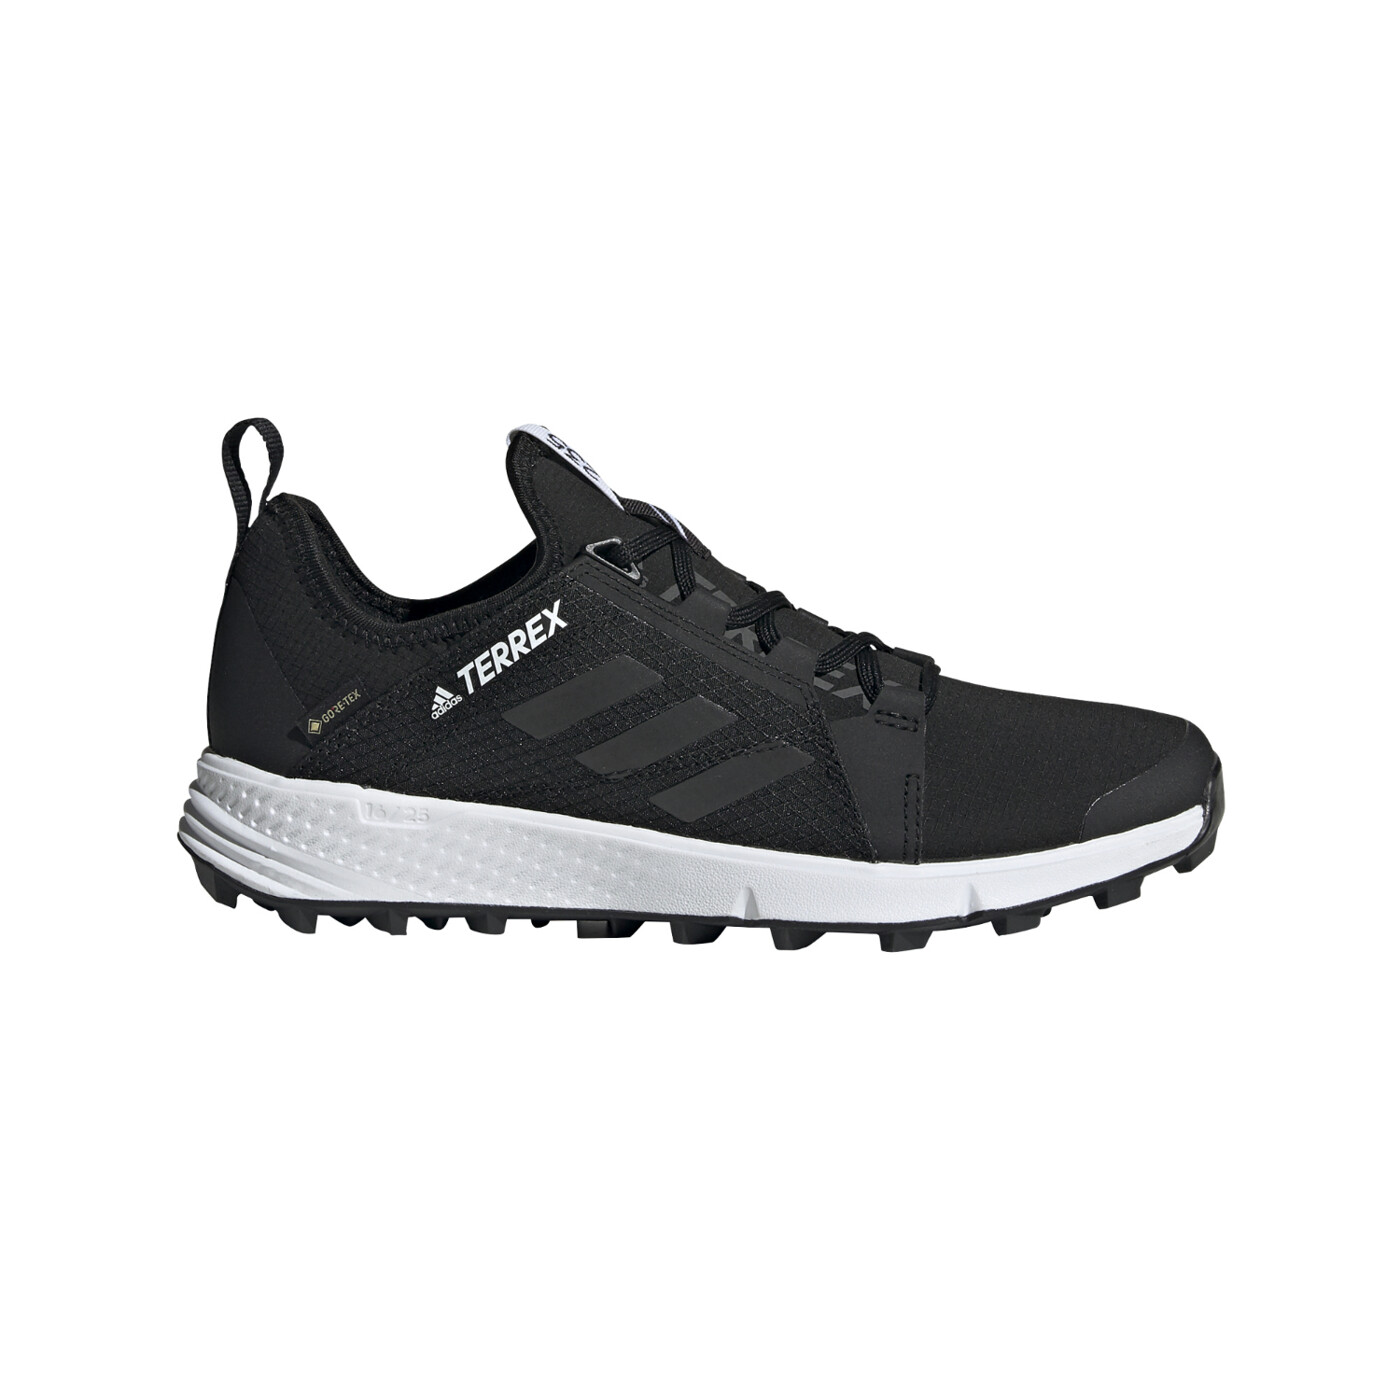 ADIDAS TERREX SPEED GTX W - Damen